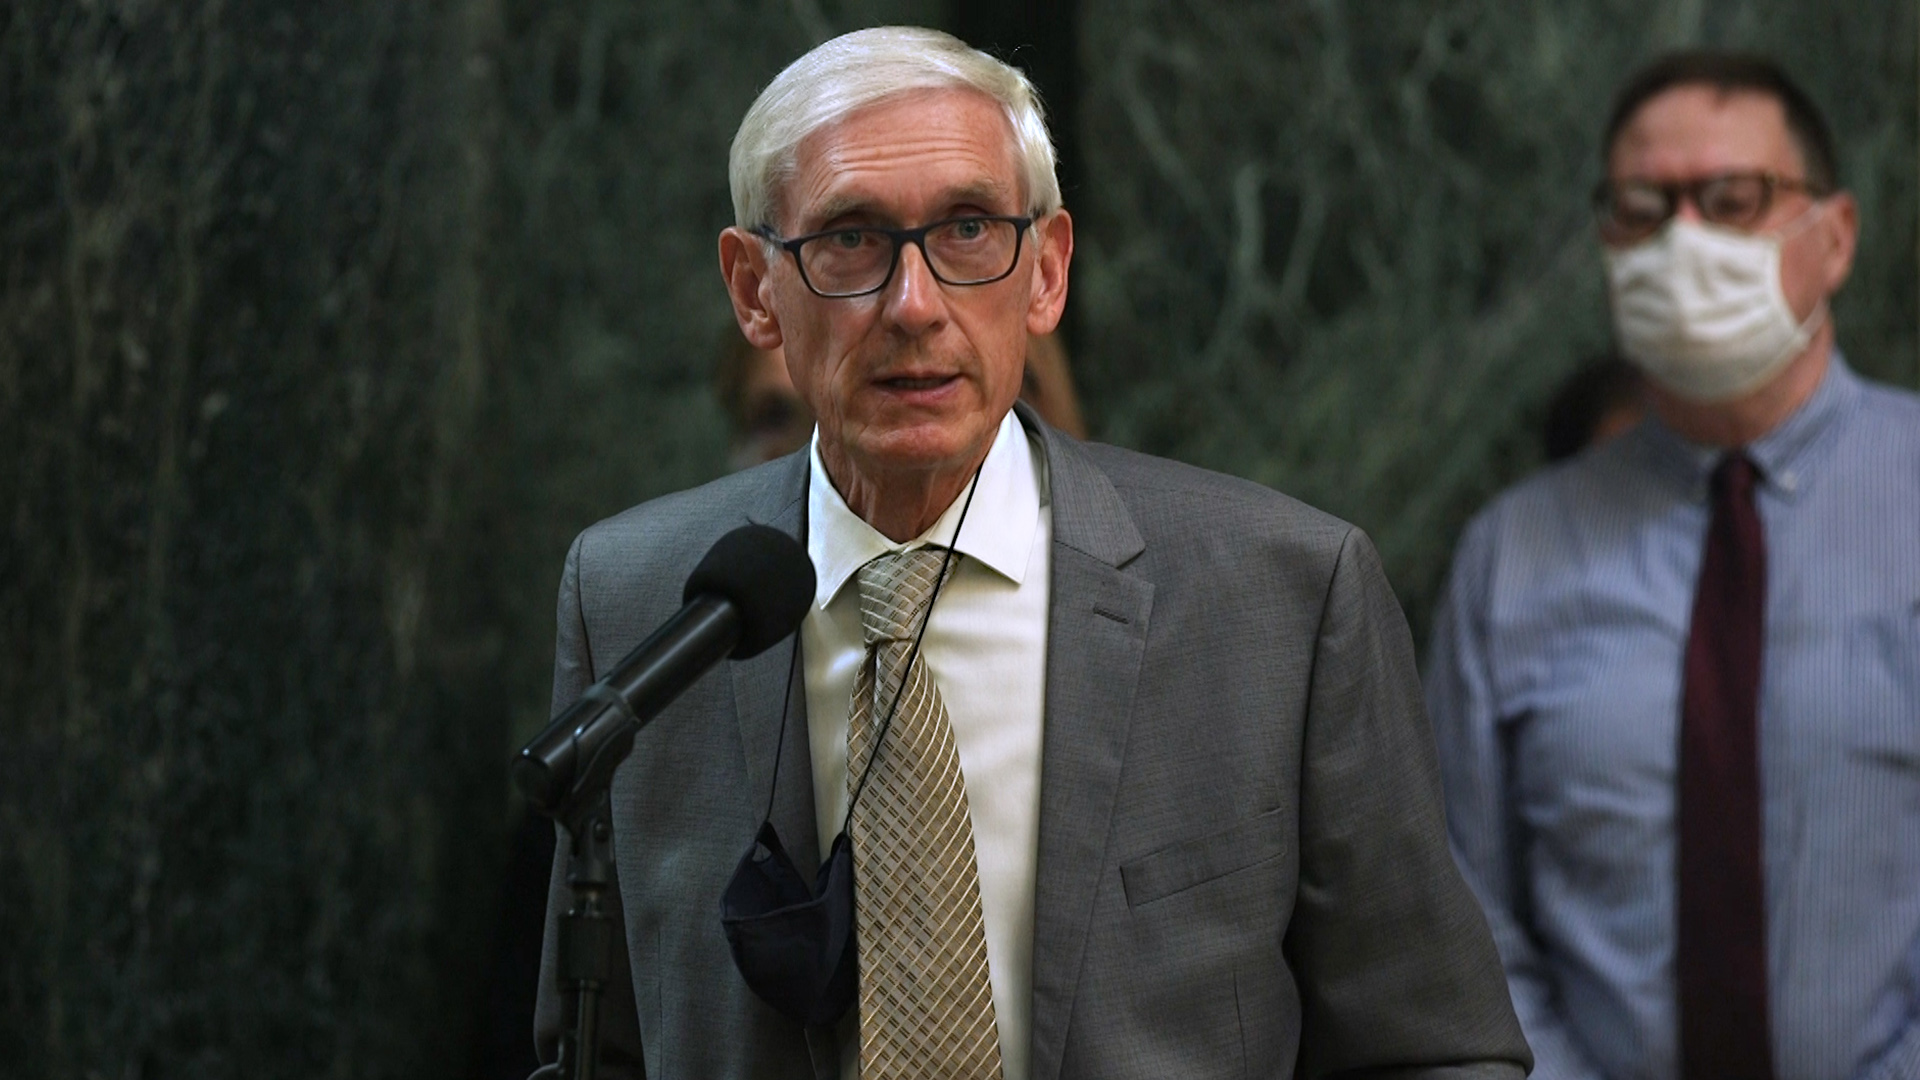 Tony Evers speaks at a microphone in the Wisconsin Capitol.